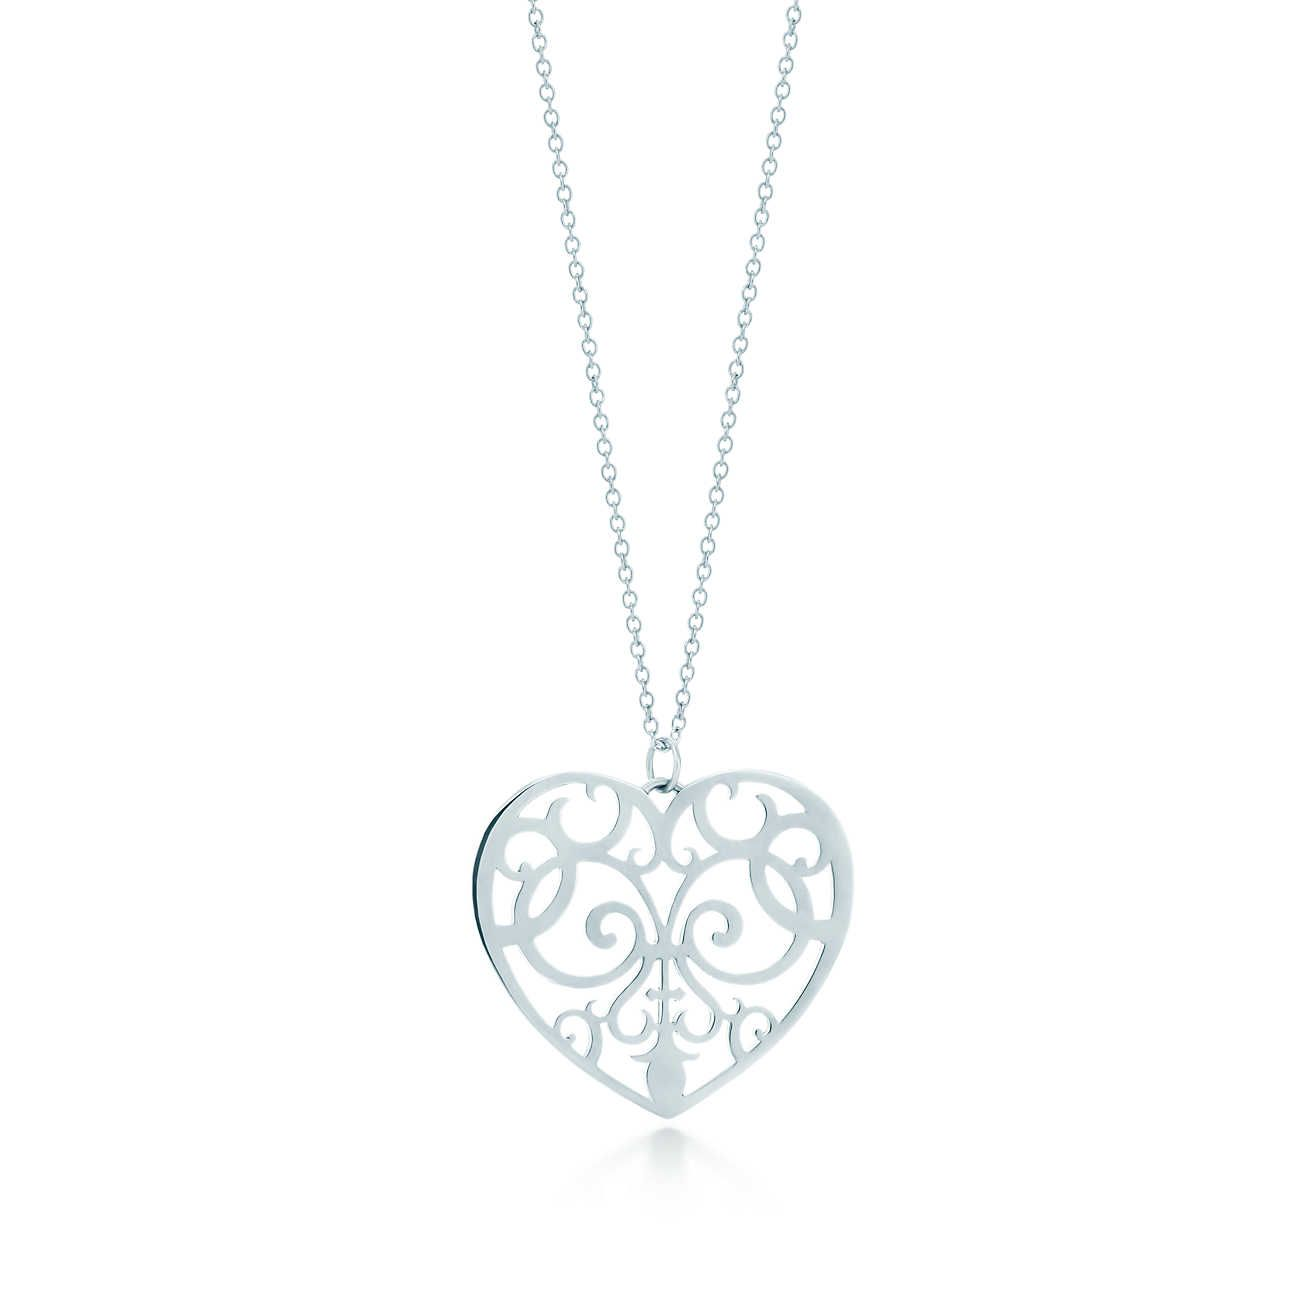 Tiffany enchant heart pendant enchanted tiffany and pendants tiffany enchantheart pendant aloadofball Images